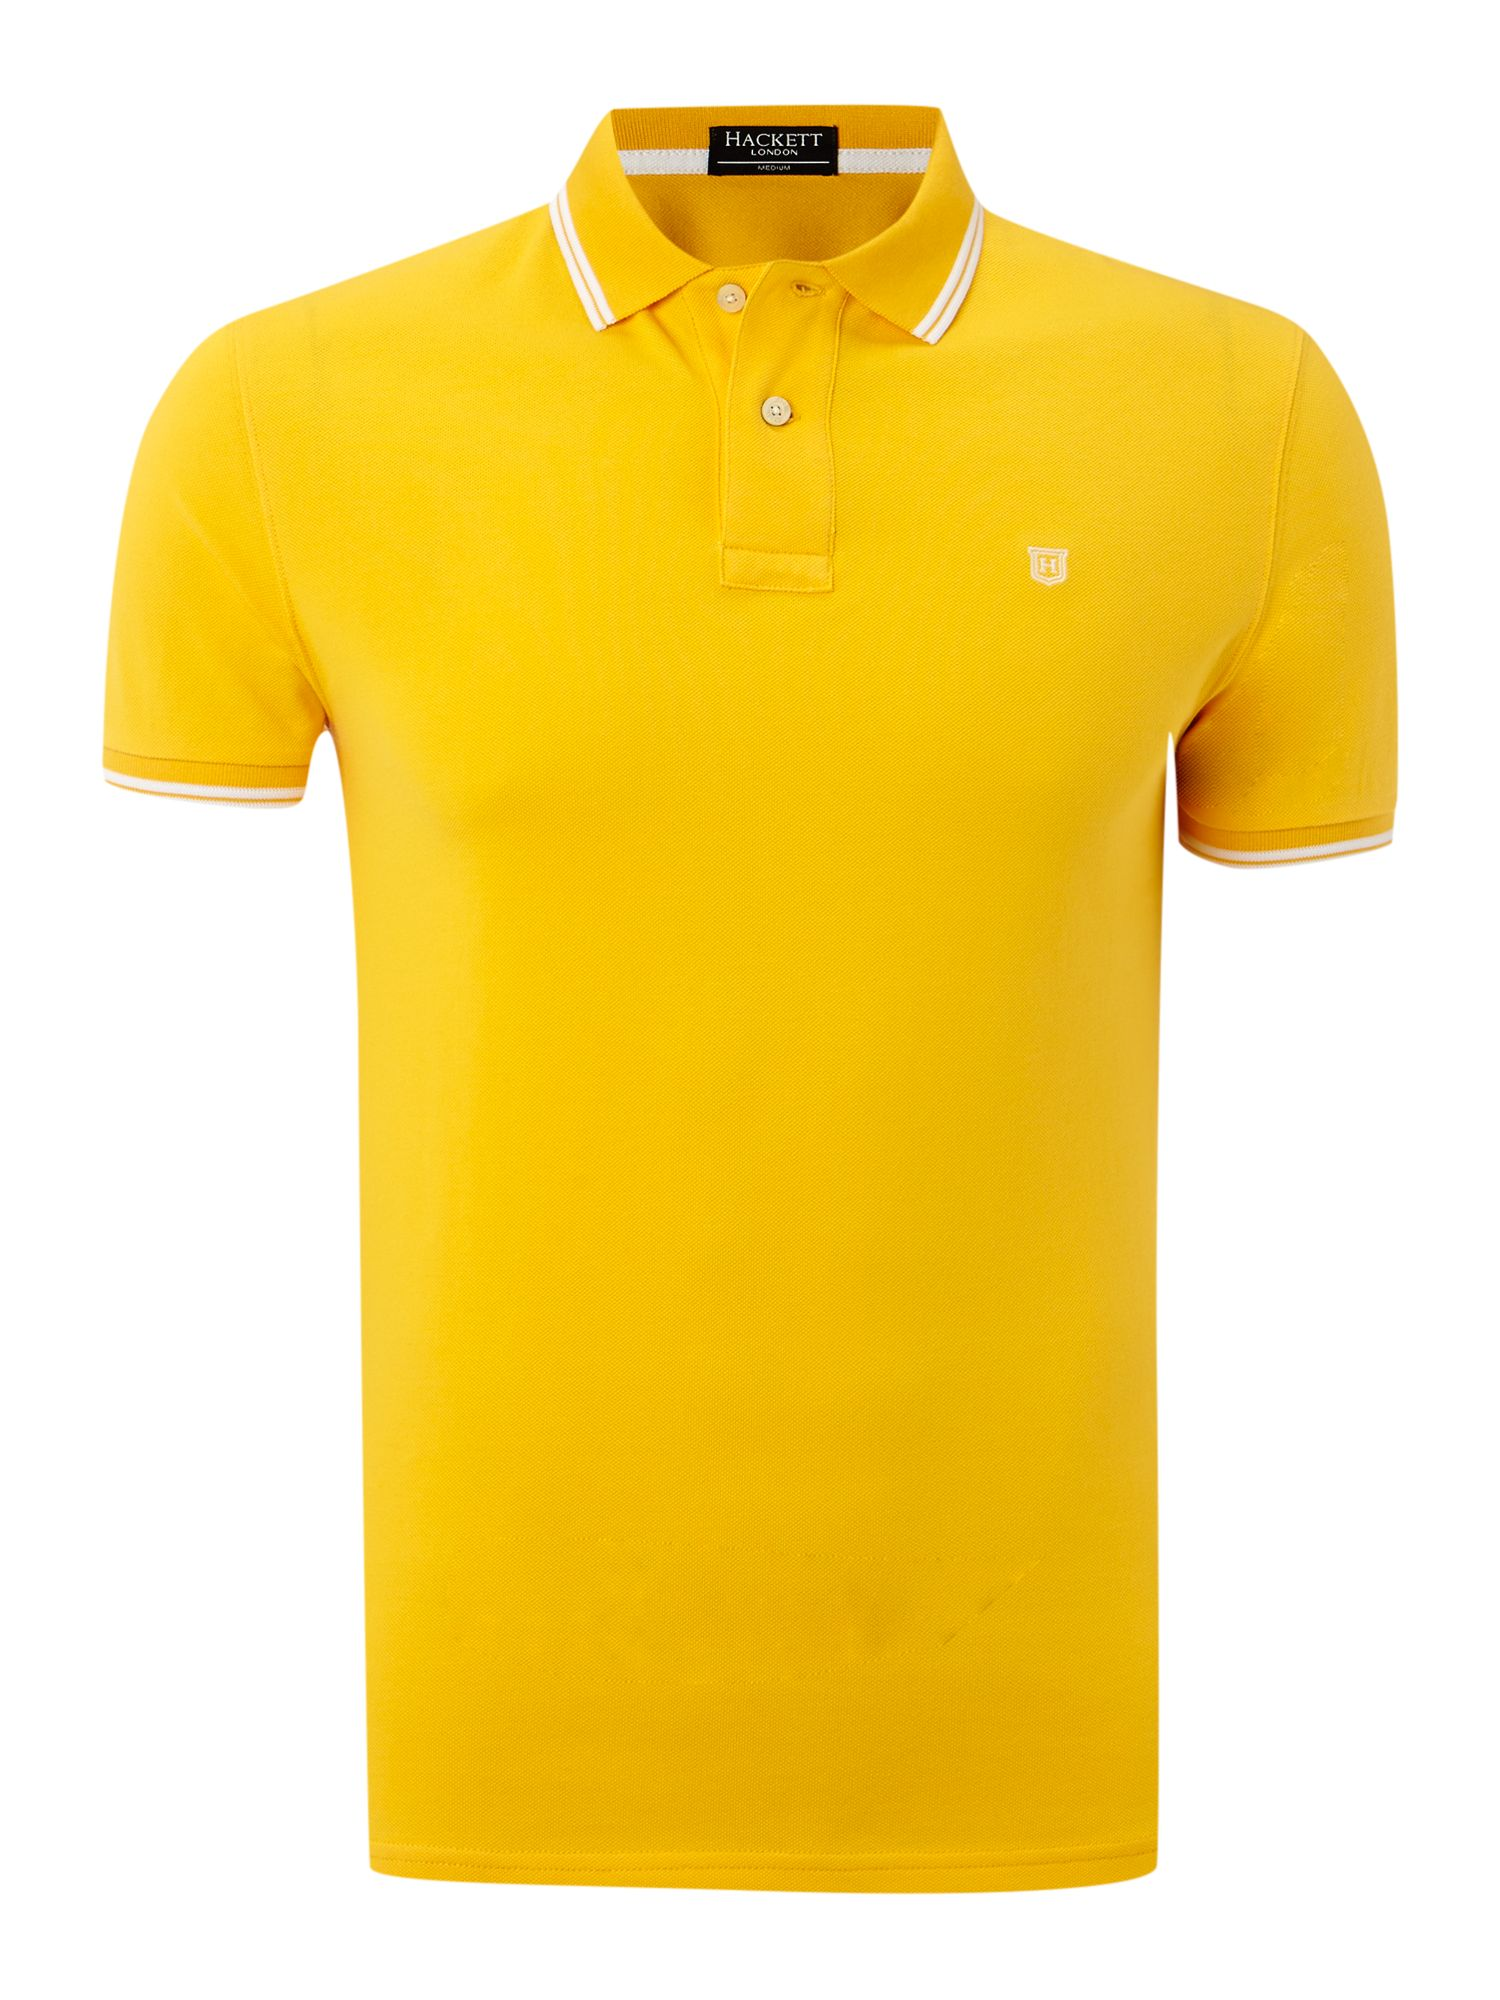 Regular fit double tip polo shirt